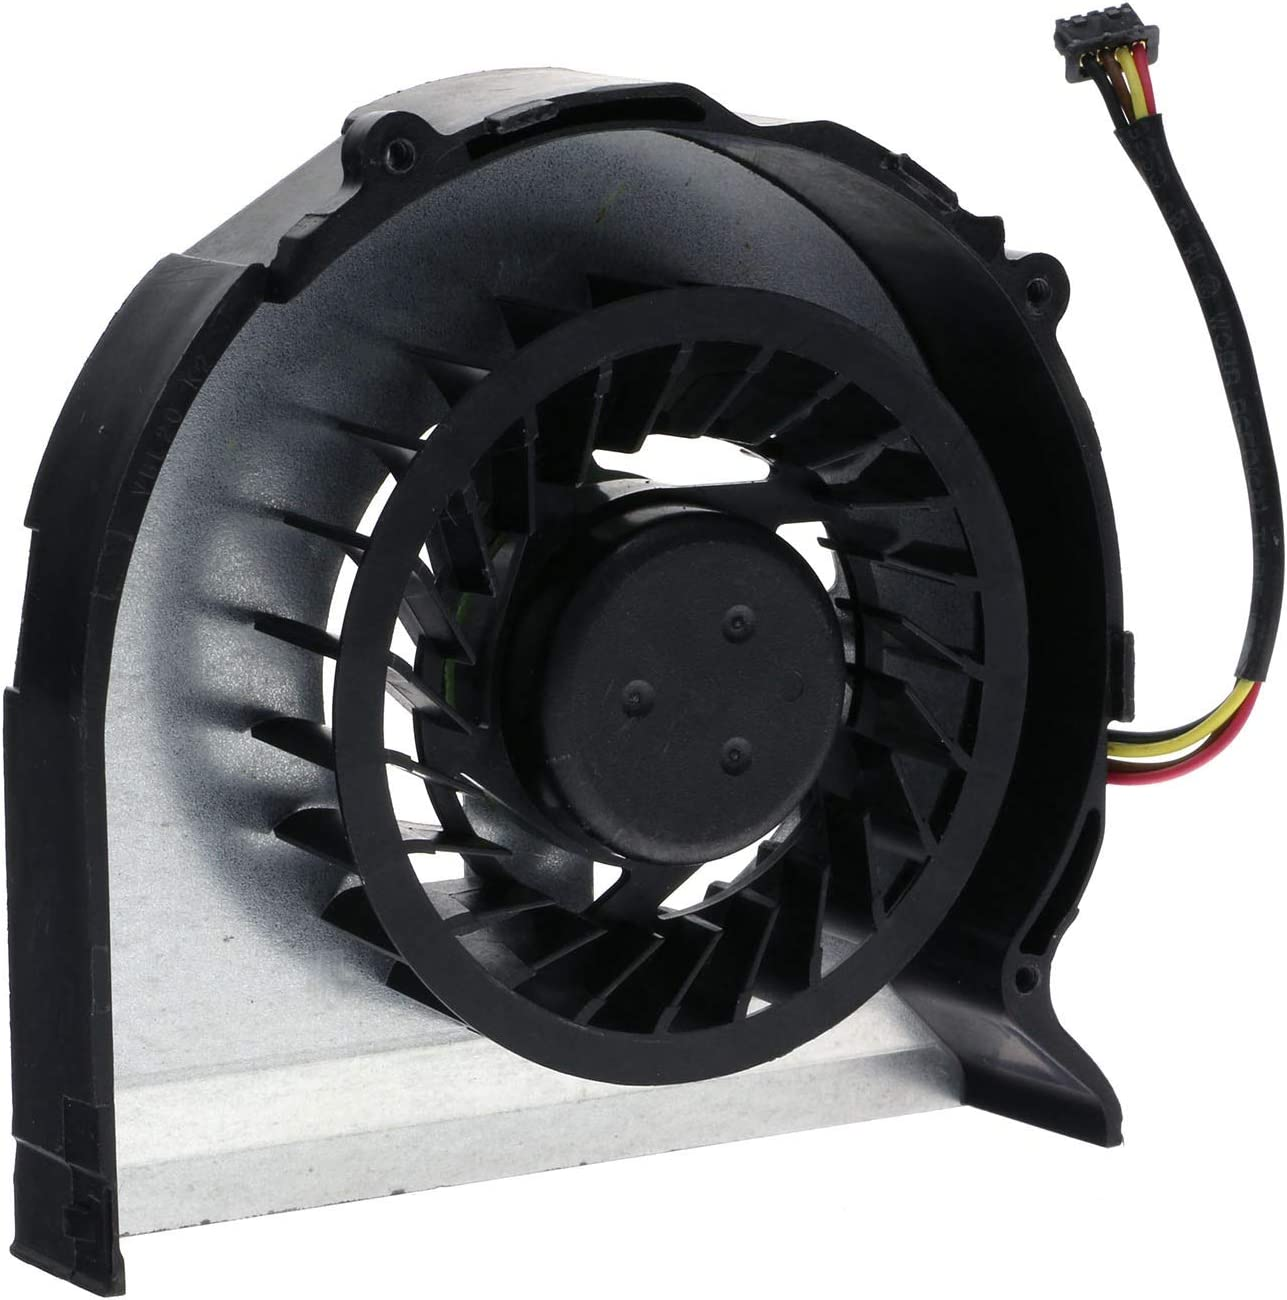 CPU Cooling Fan for HP ZBOOK 15 G1 G2 734290-001 734289-001 AB07505HX170B00